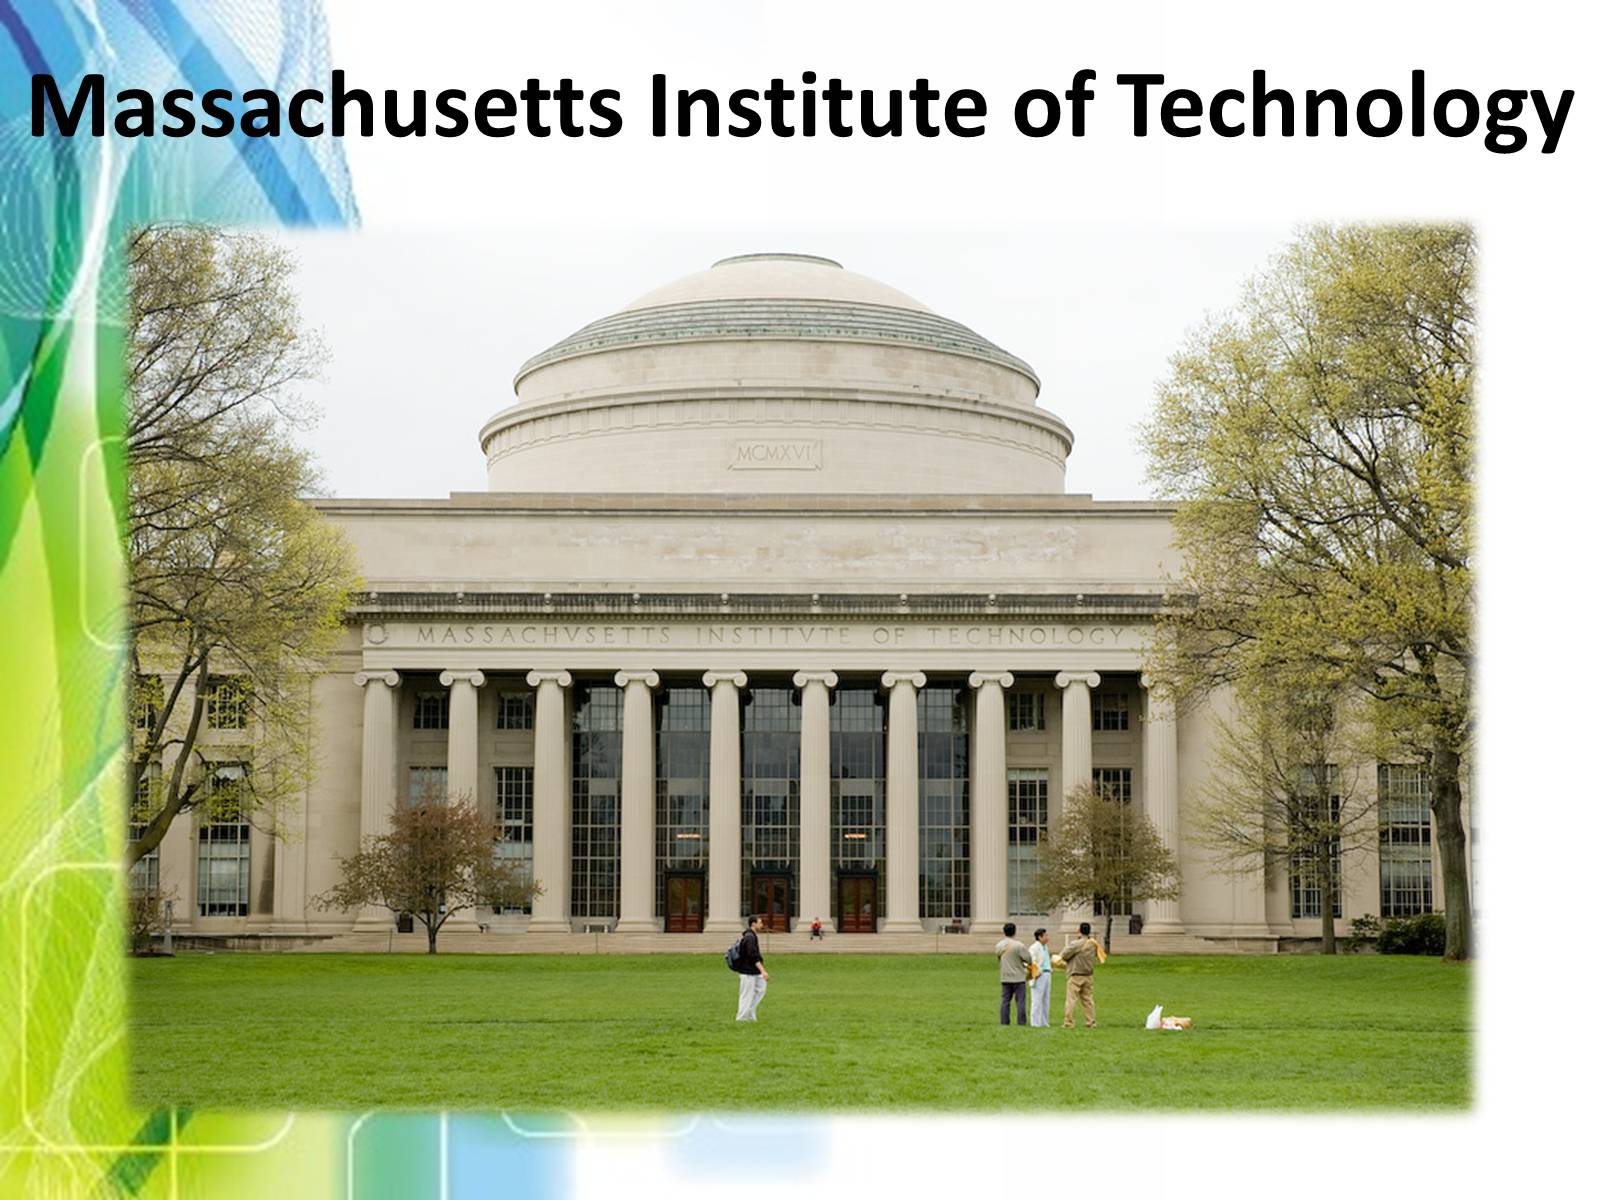 Презентація на тему «Massachusetts Institute of Technology»